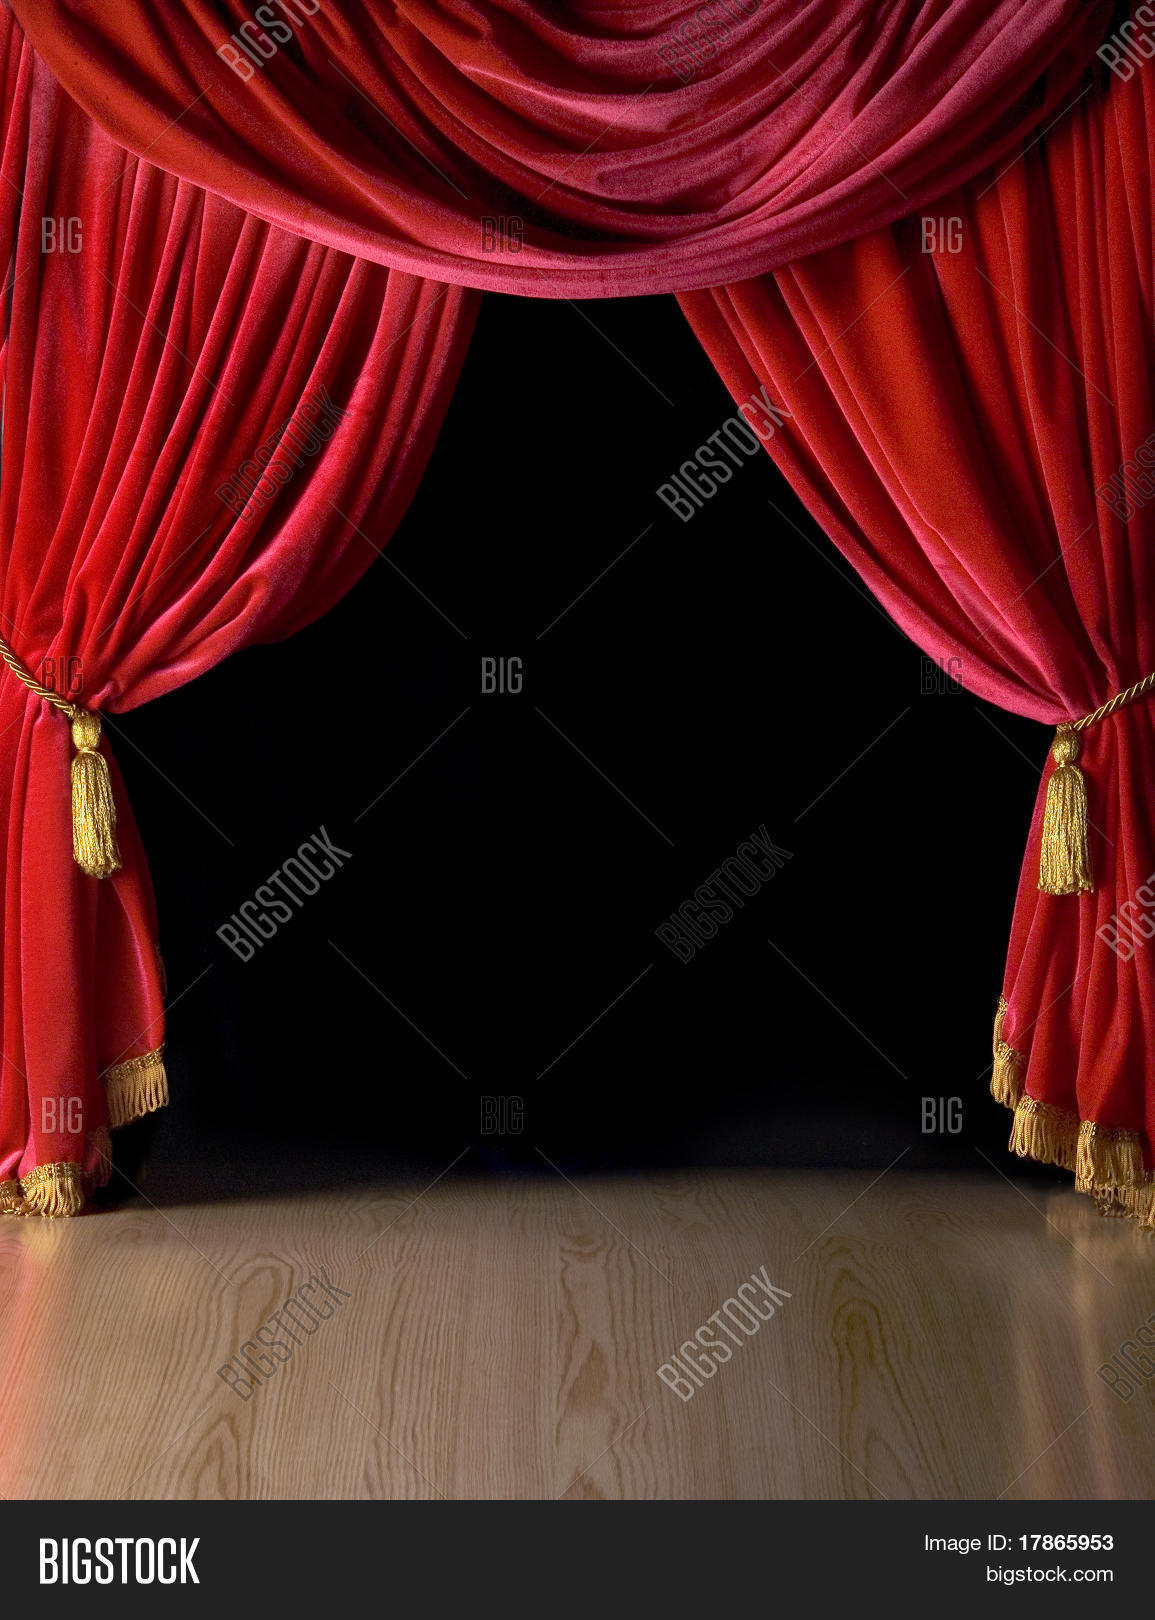 red of stock curtain image curtains drapery theater velvet